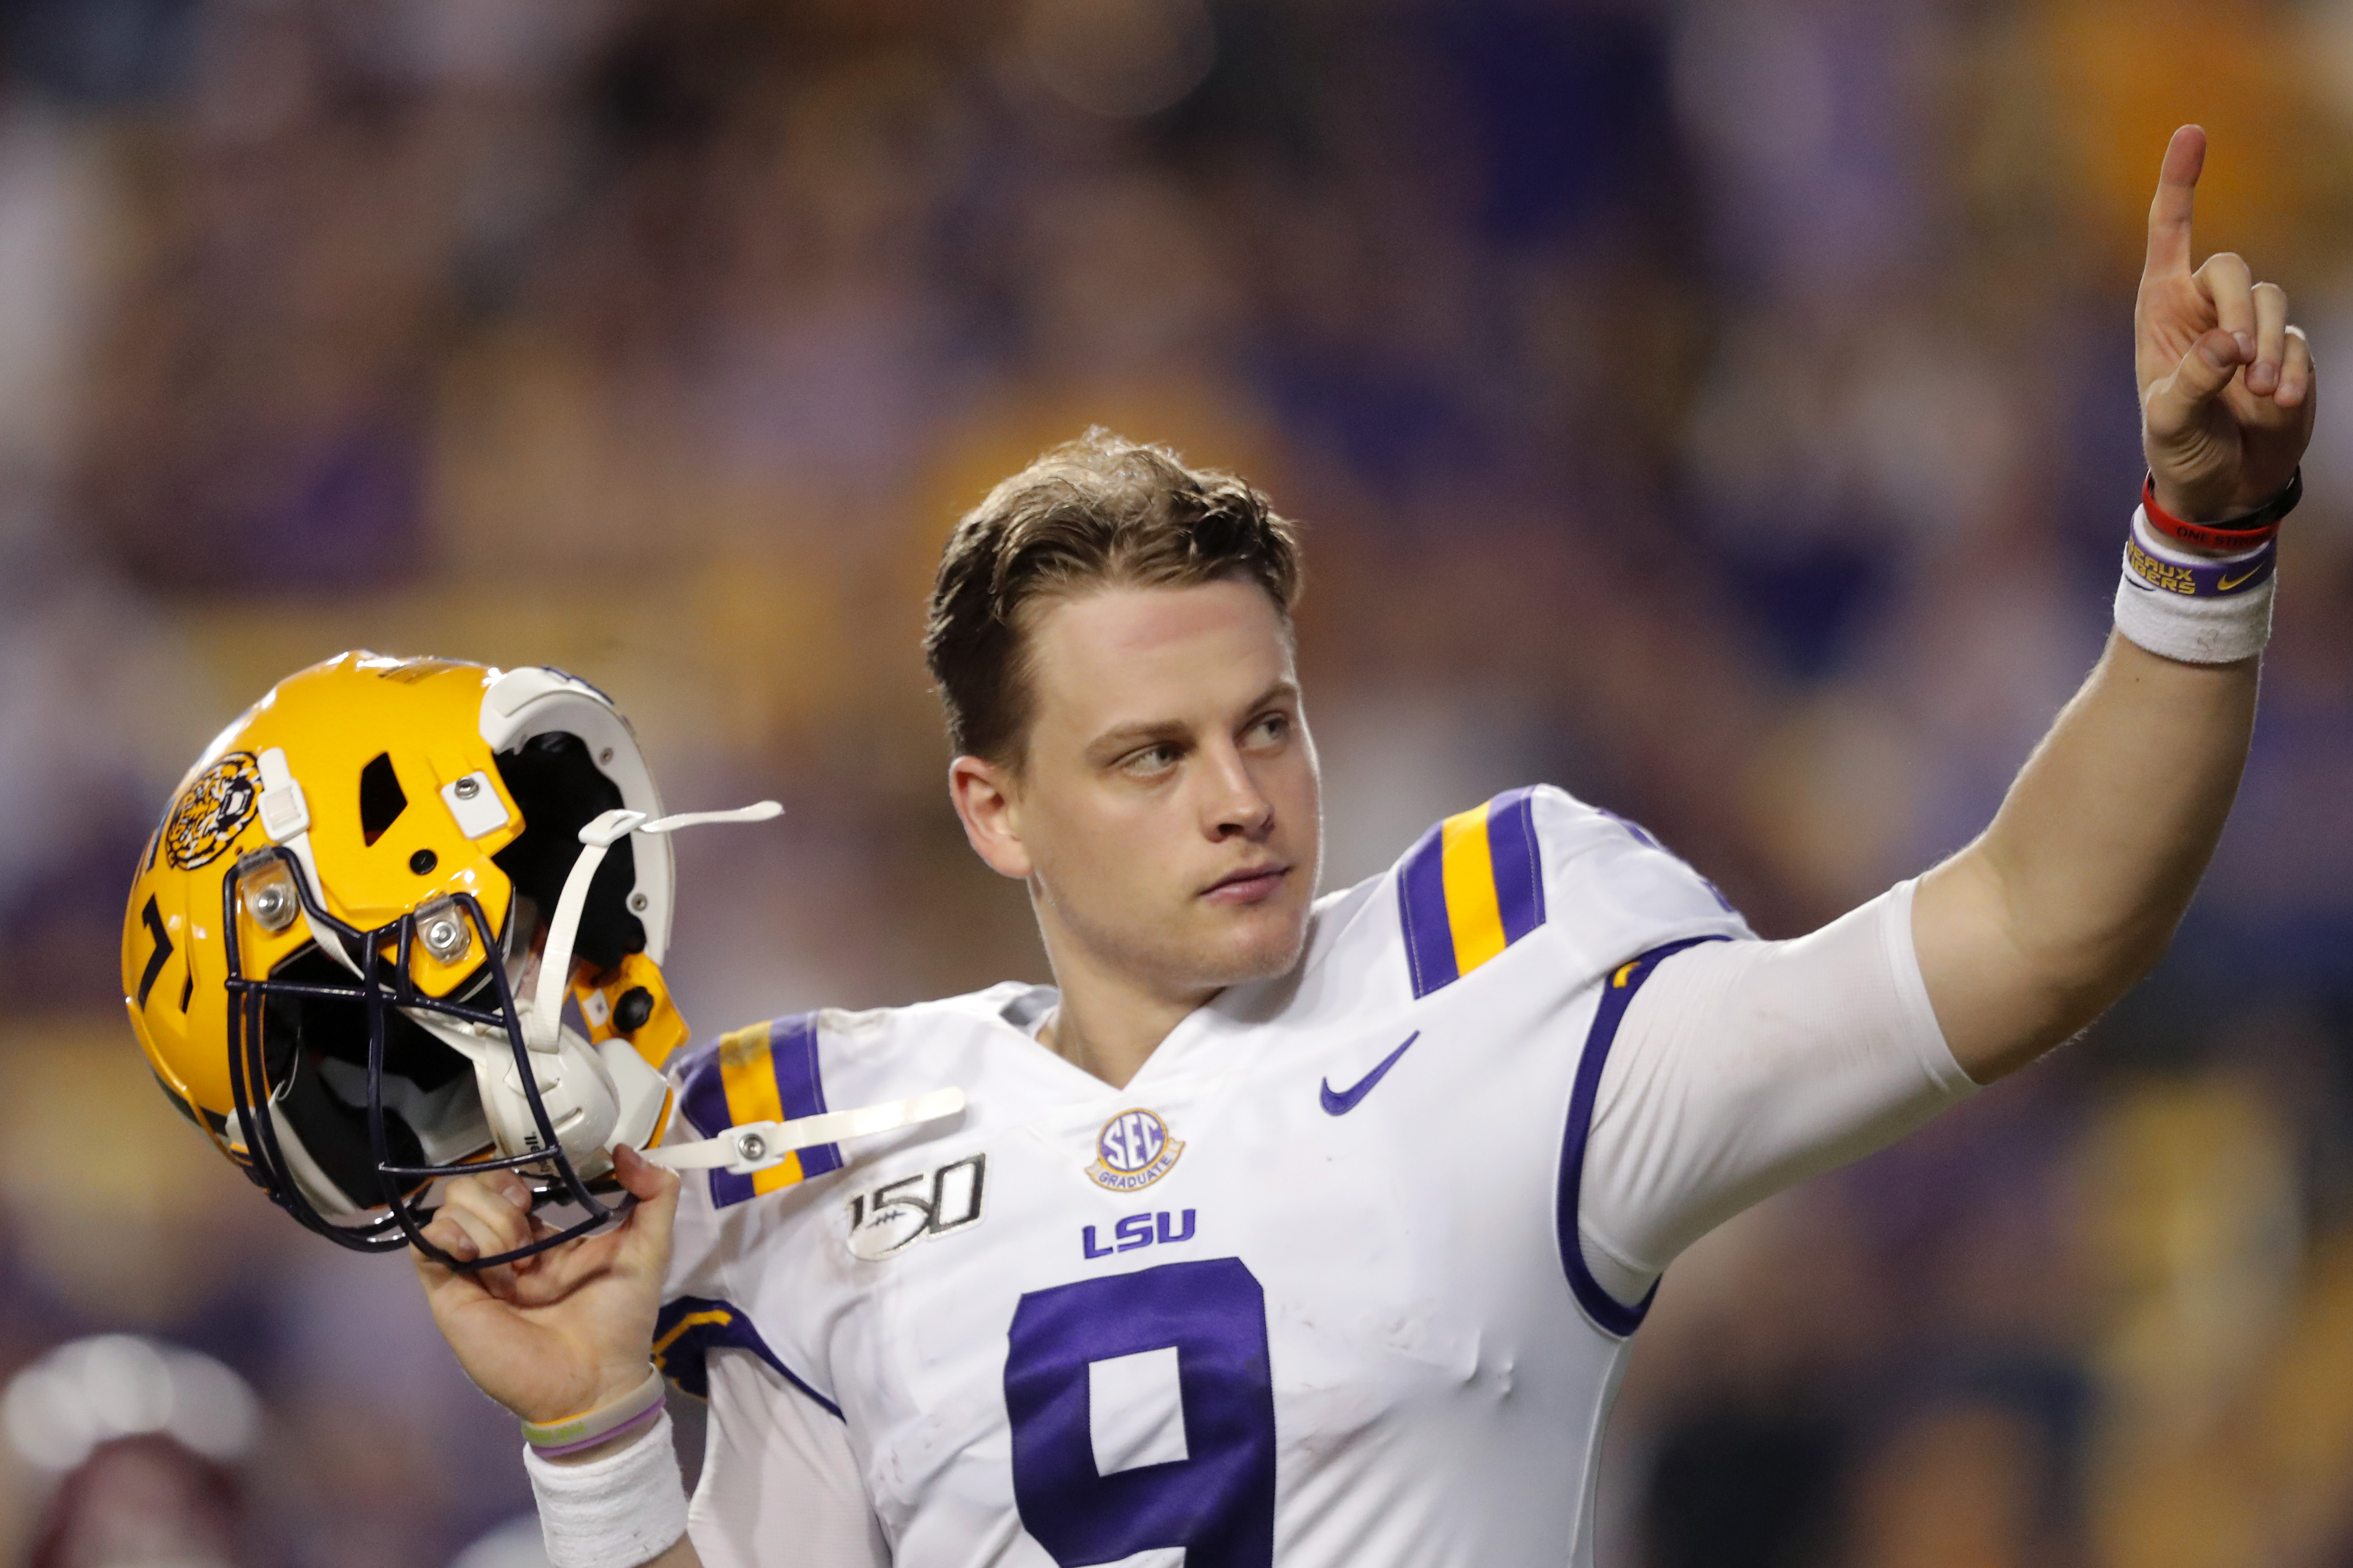 Peyton Manning has serious advice, and a wisecrack, for Joe Burrow ...